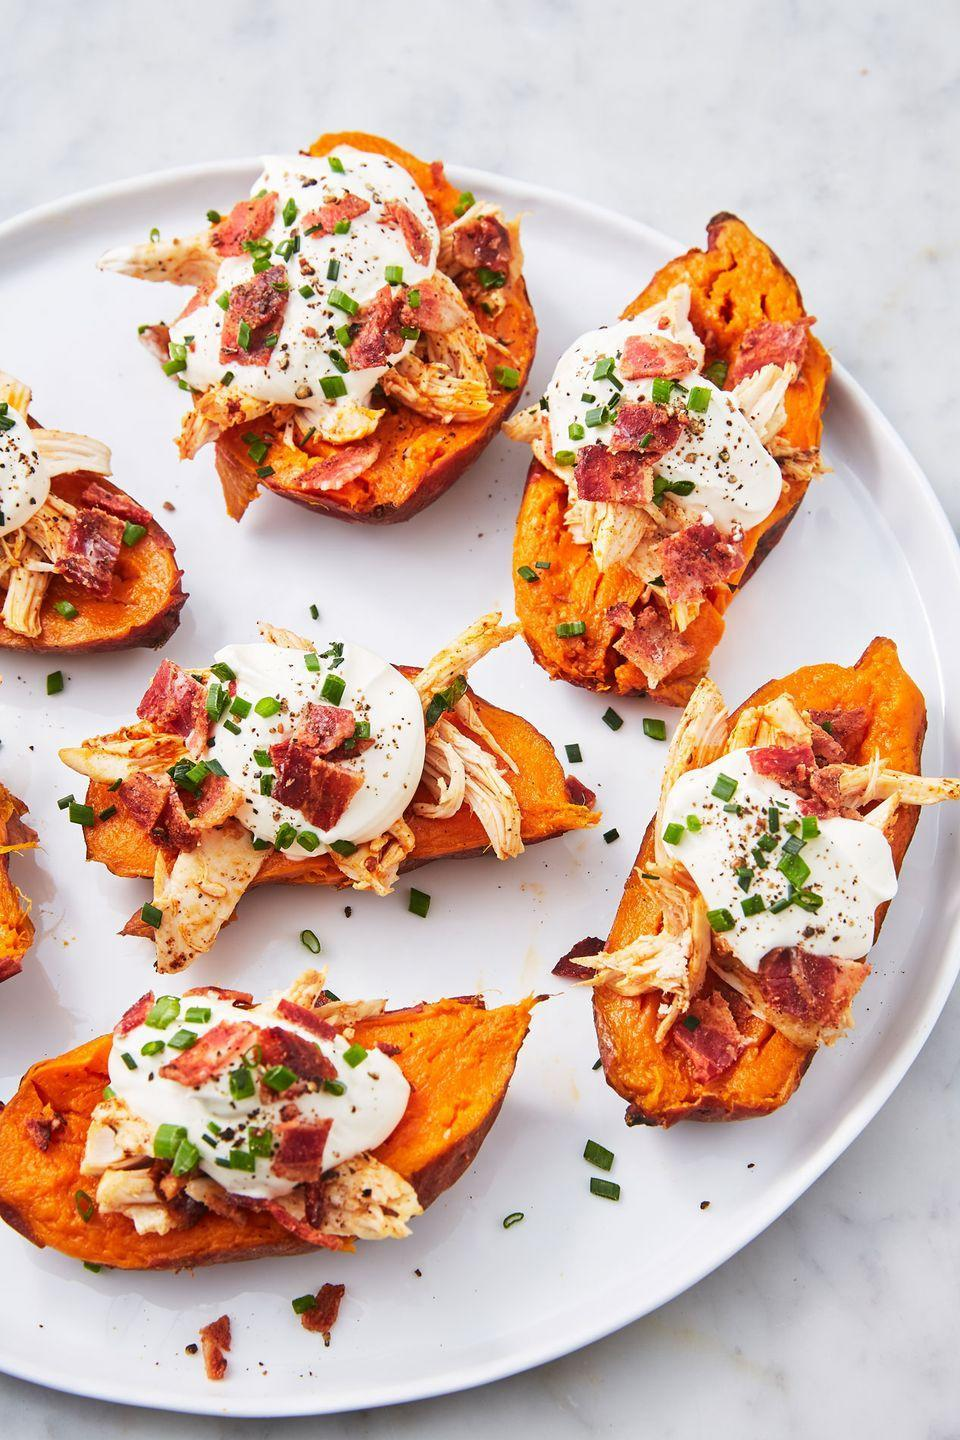 """<p>Four ingredients, one easy dinner.</p><p>Get the recipe from <a href=""""https://www.delish.com/cooking/recipe-ideas/a27059441/instant-pot-sweet-potatoes-recipe/"""" rel=""""nofollow noopener"""" target=""""_blank"""" data-ylk=""""slk:Delish"""" class=""""link rapid-noclick-resp"""">Delish</a>.</p>"""